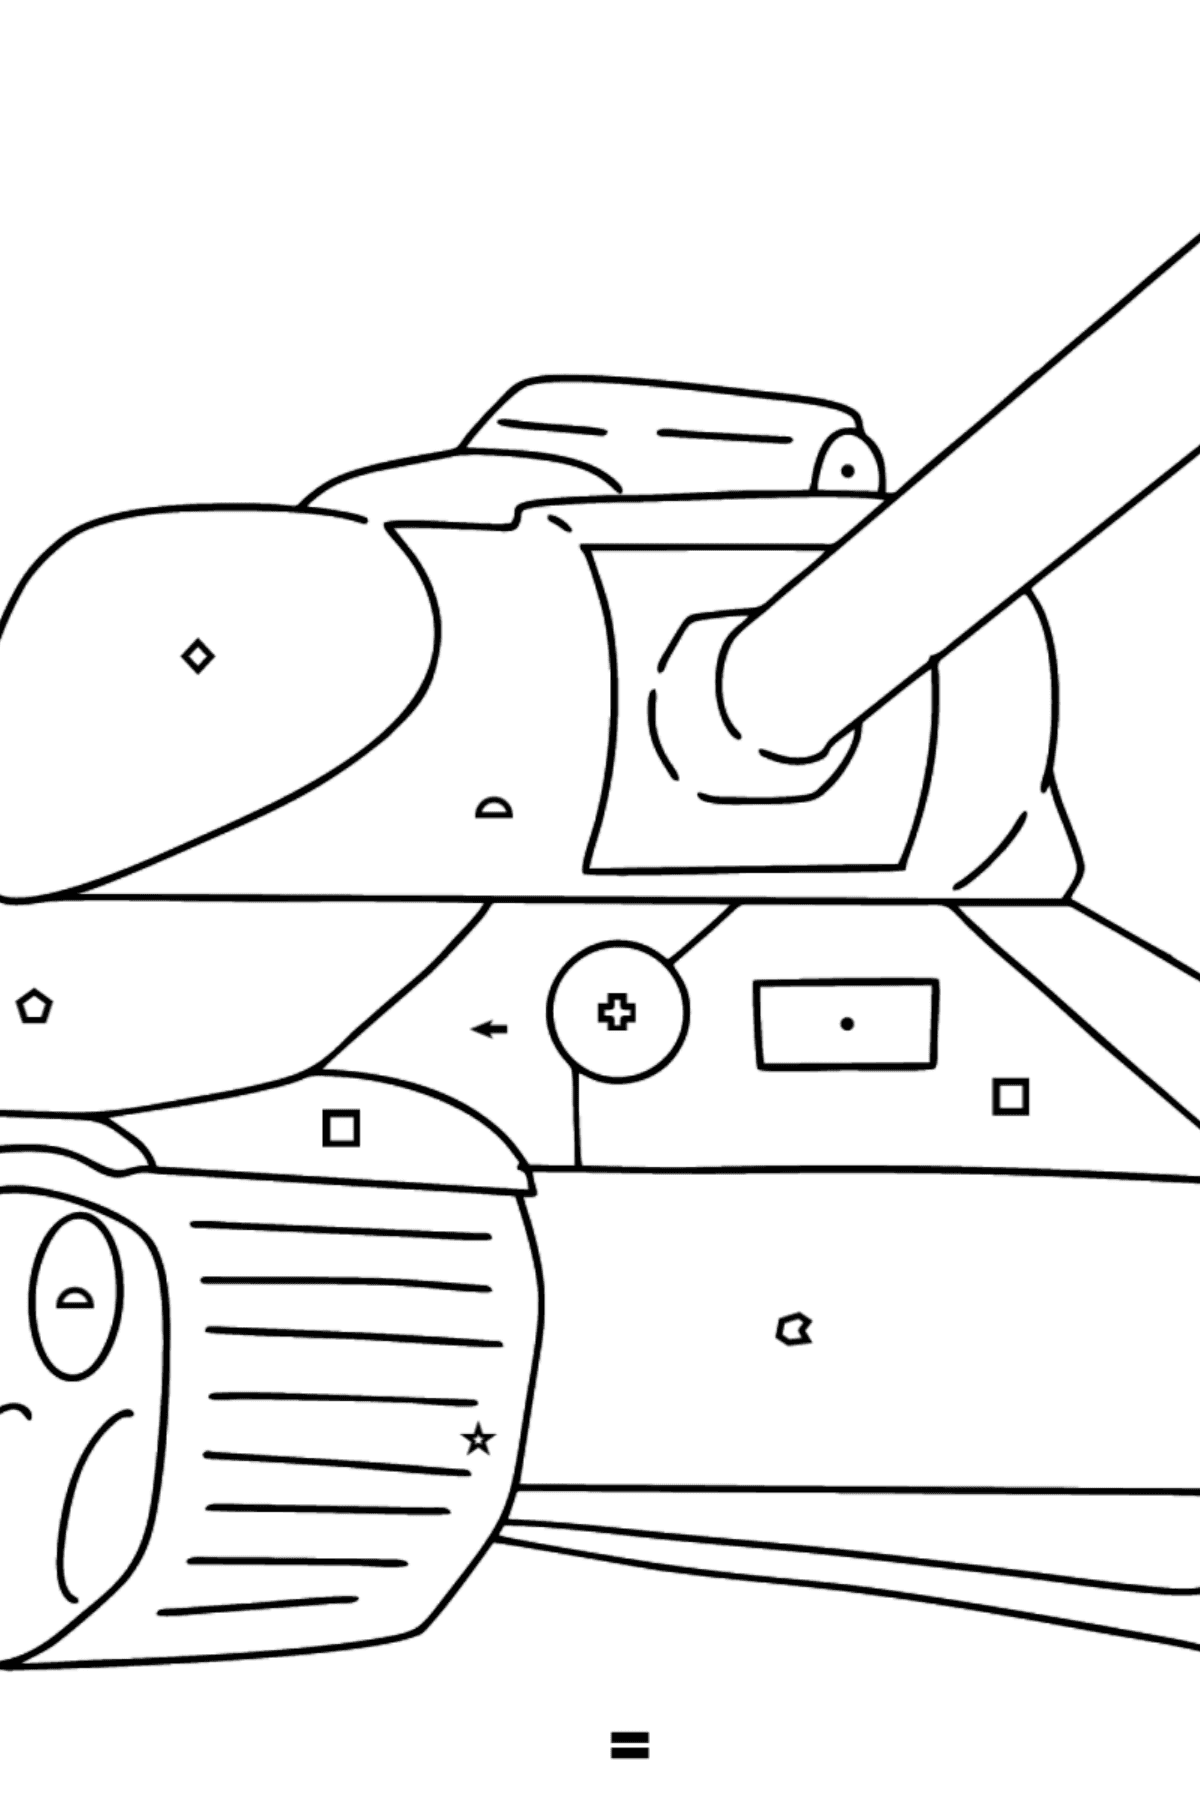 Tank IS 2 coloring page - Coloring by Symbols and Geometric Shapes for Kids